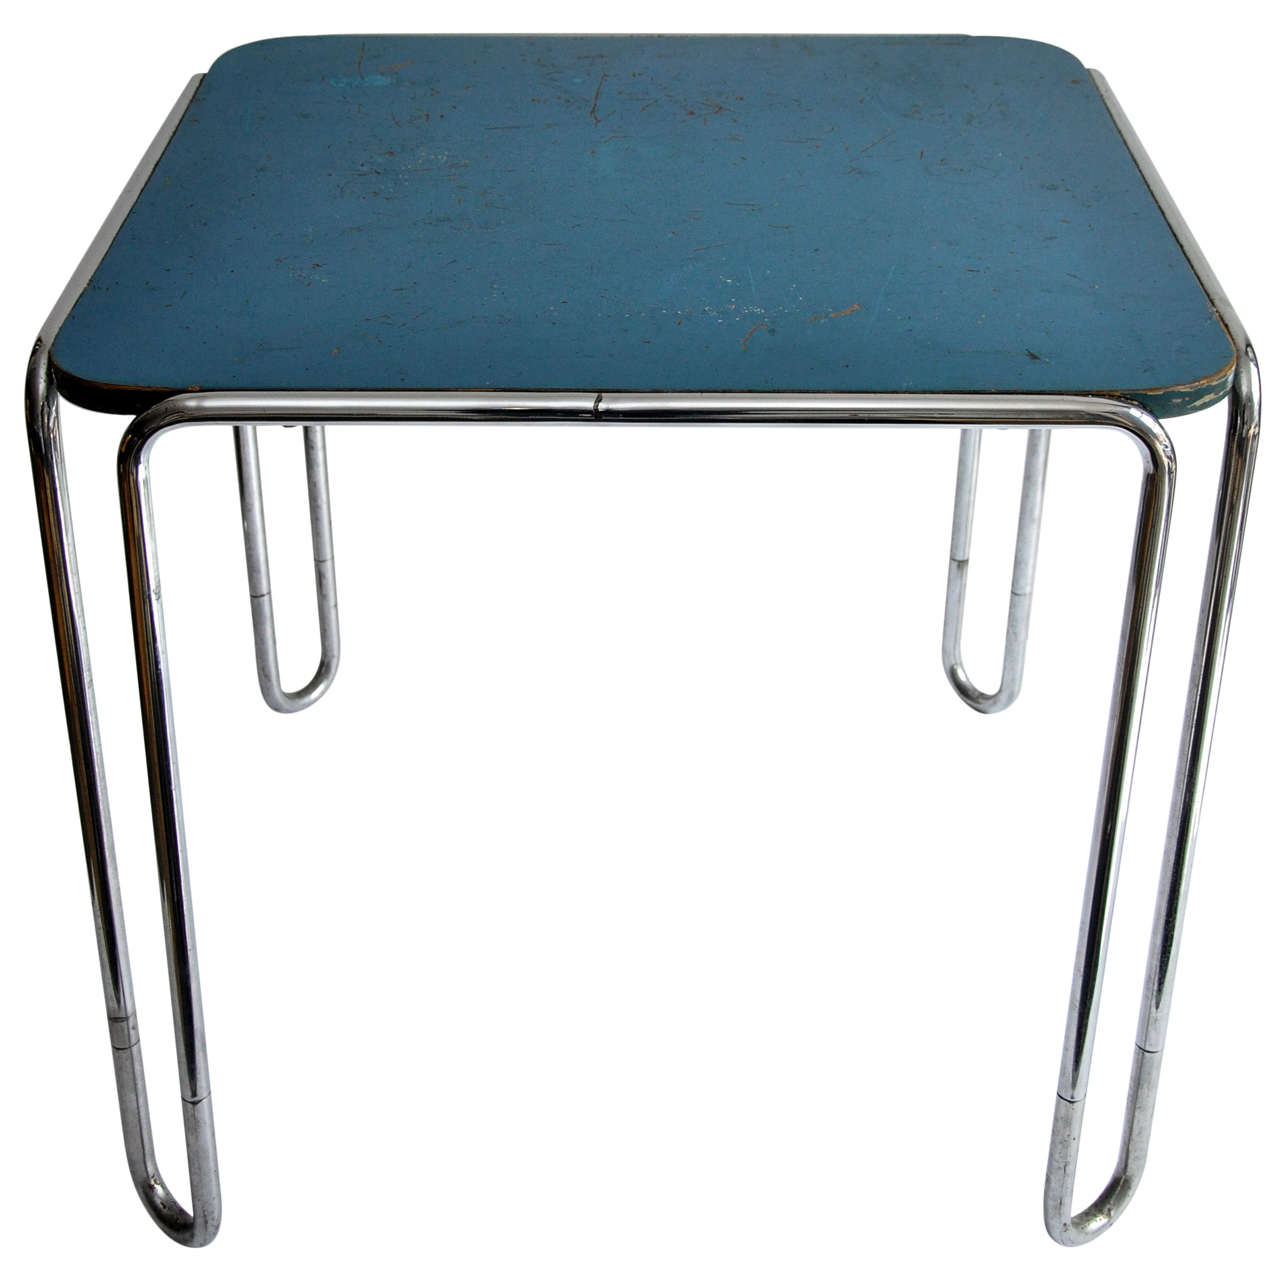 Table Folding picture on marcel breuer furniture with Table Folding, Folding Table 5f7dc0a4ecfcc0761b3ed68d62b13250